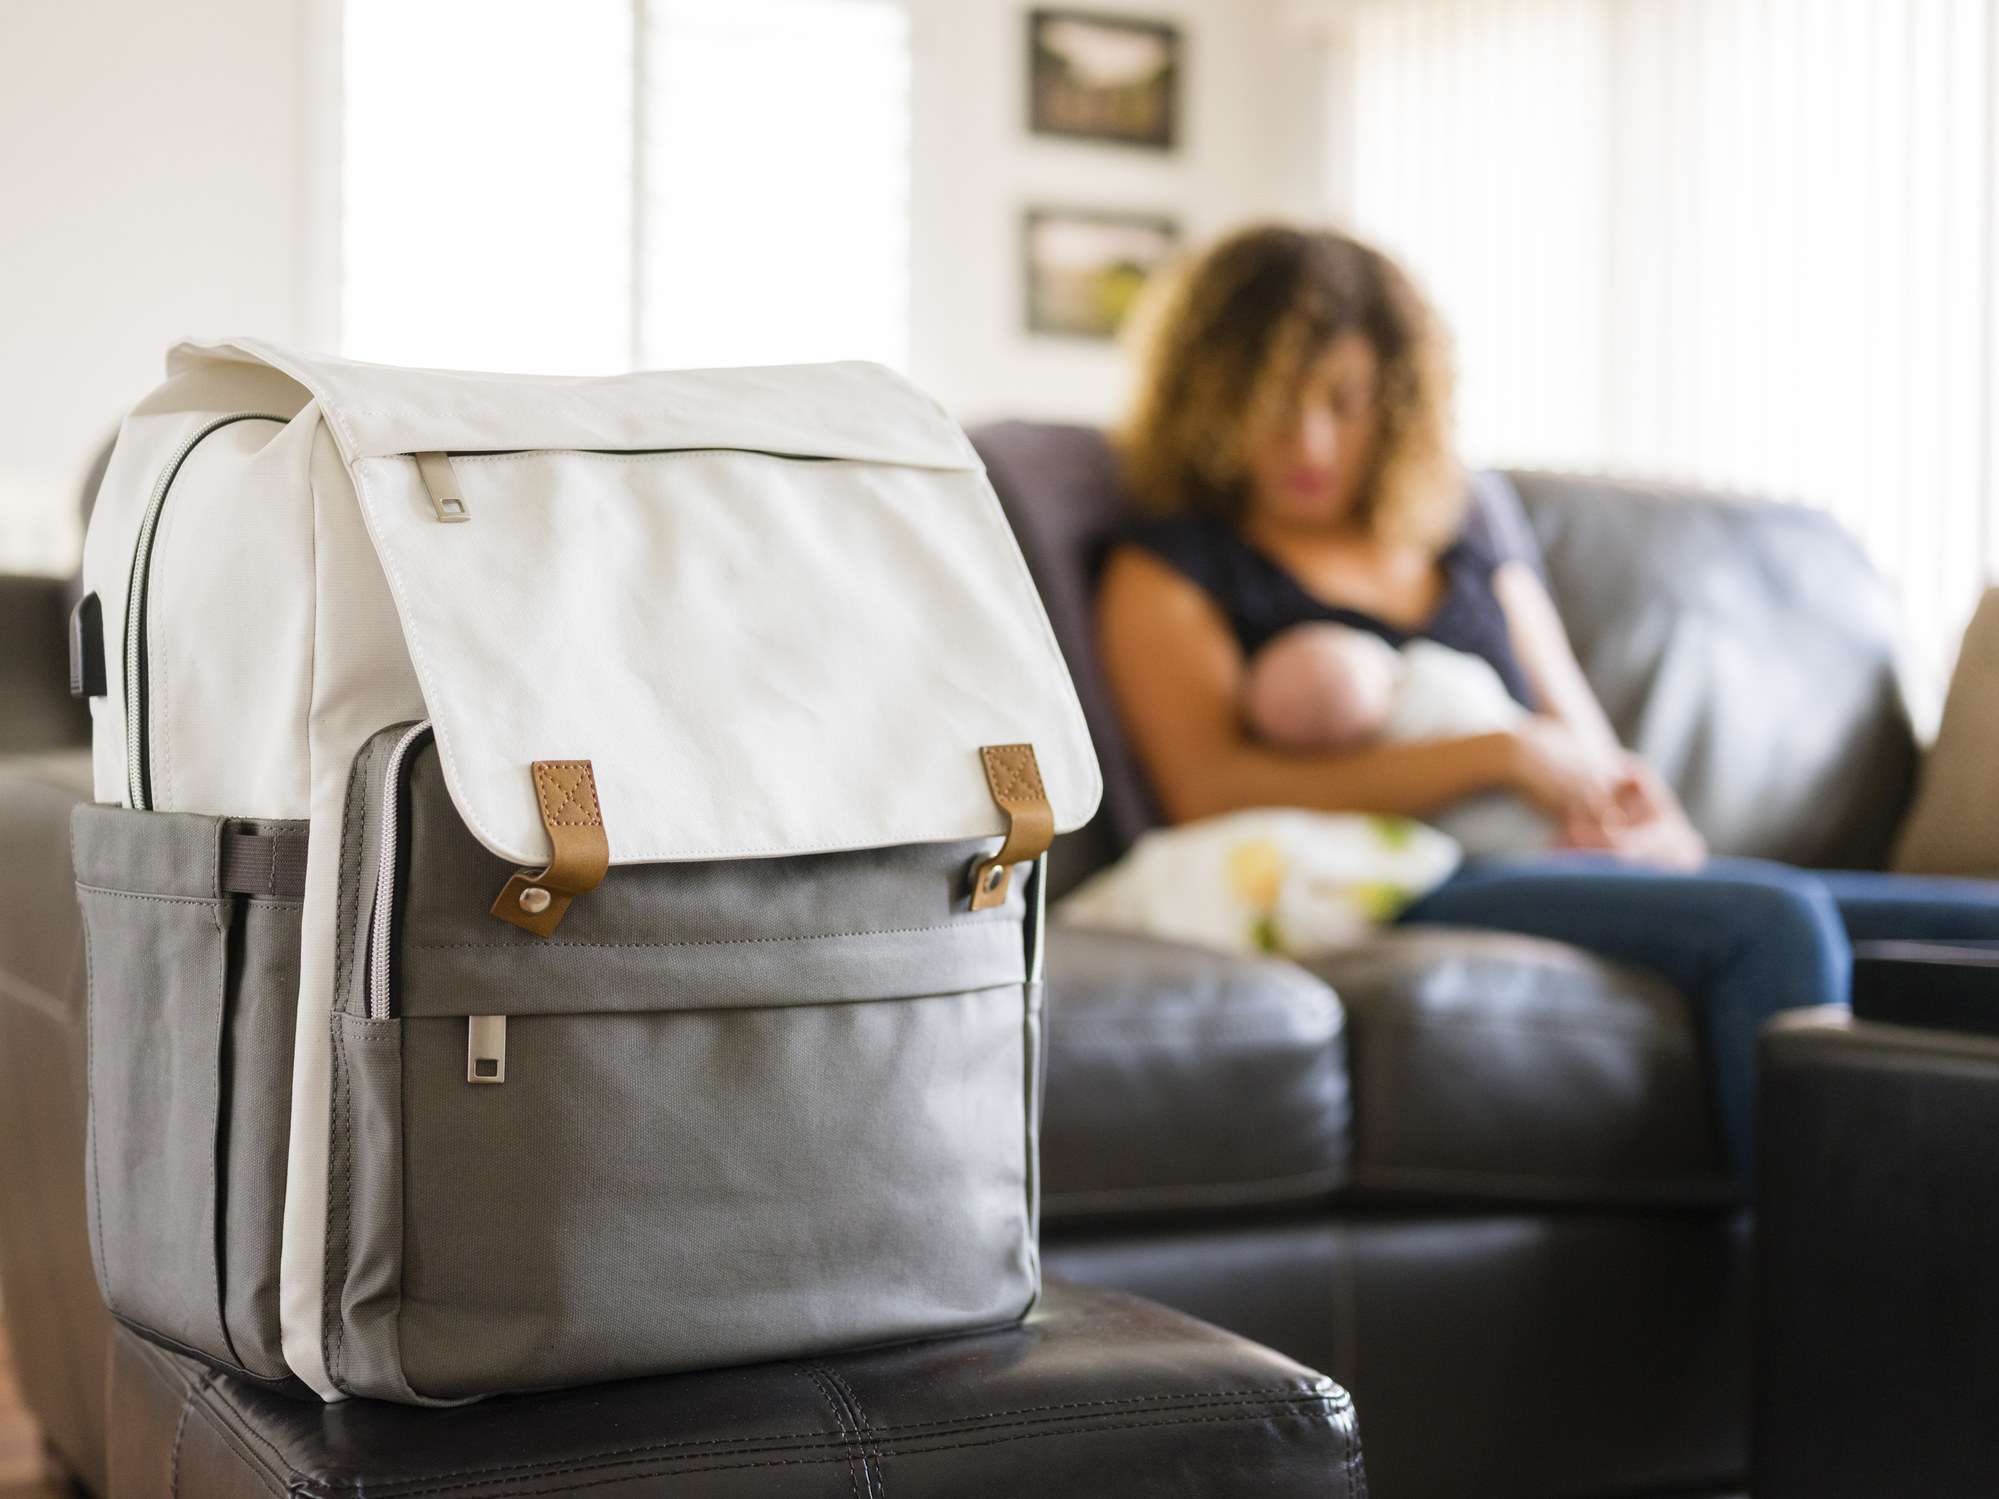 A mom with her diaper bag